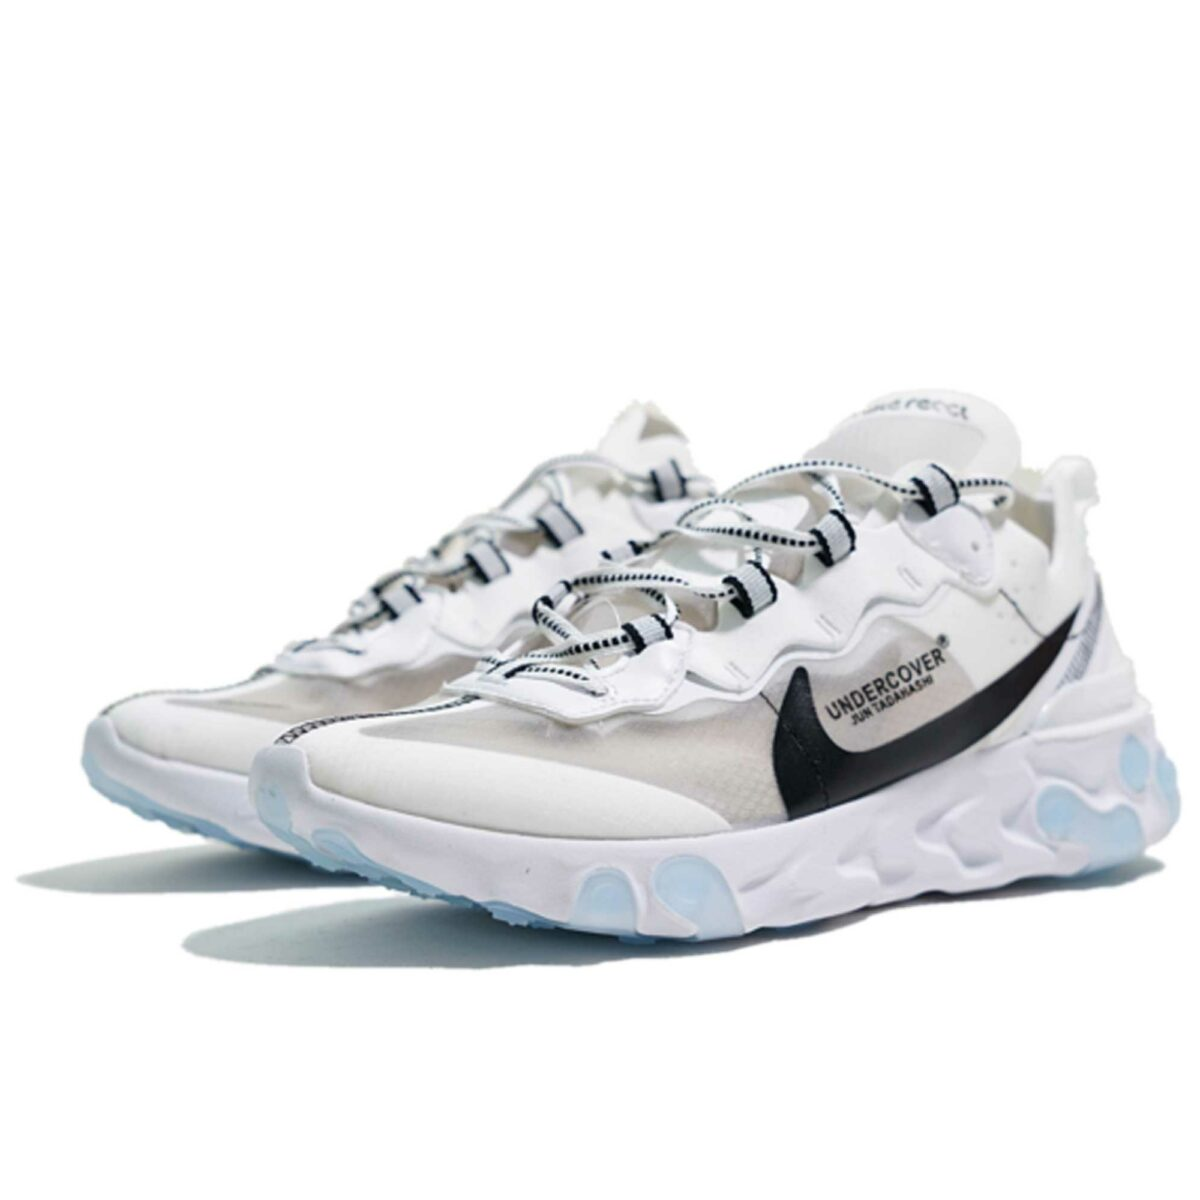 undercover x nike react element 87 white black купить